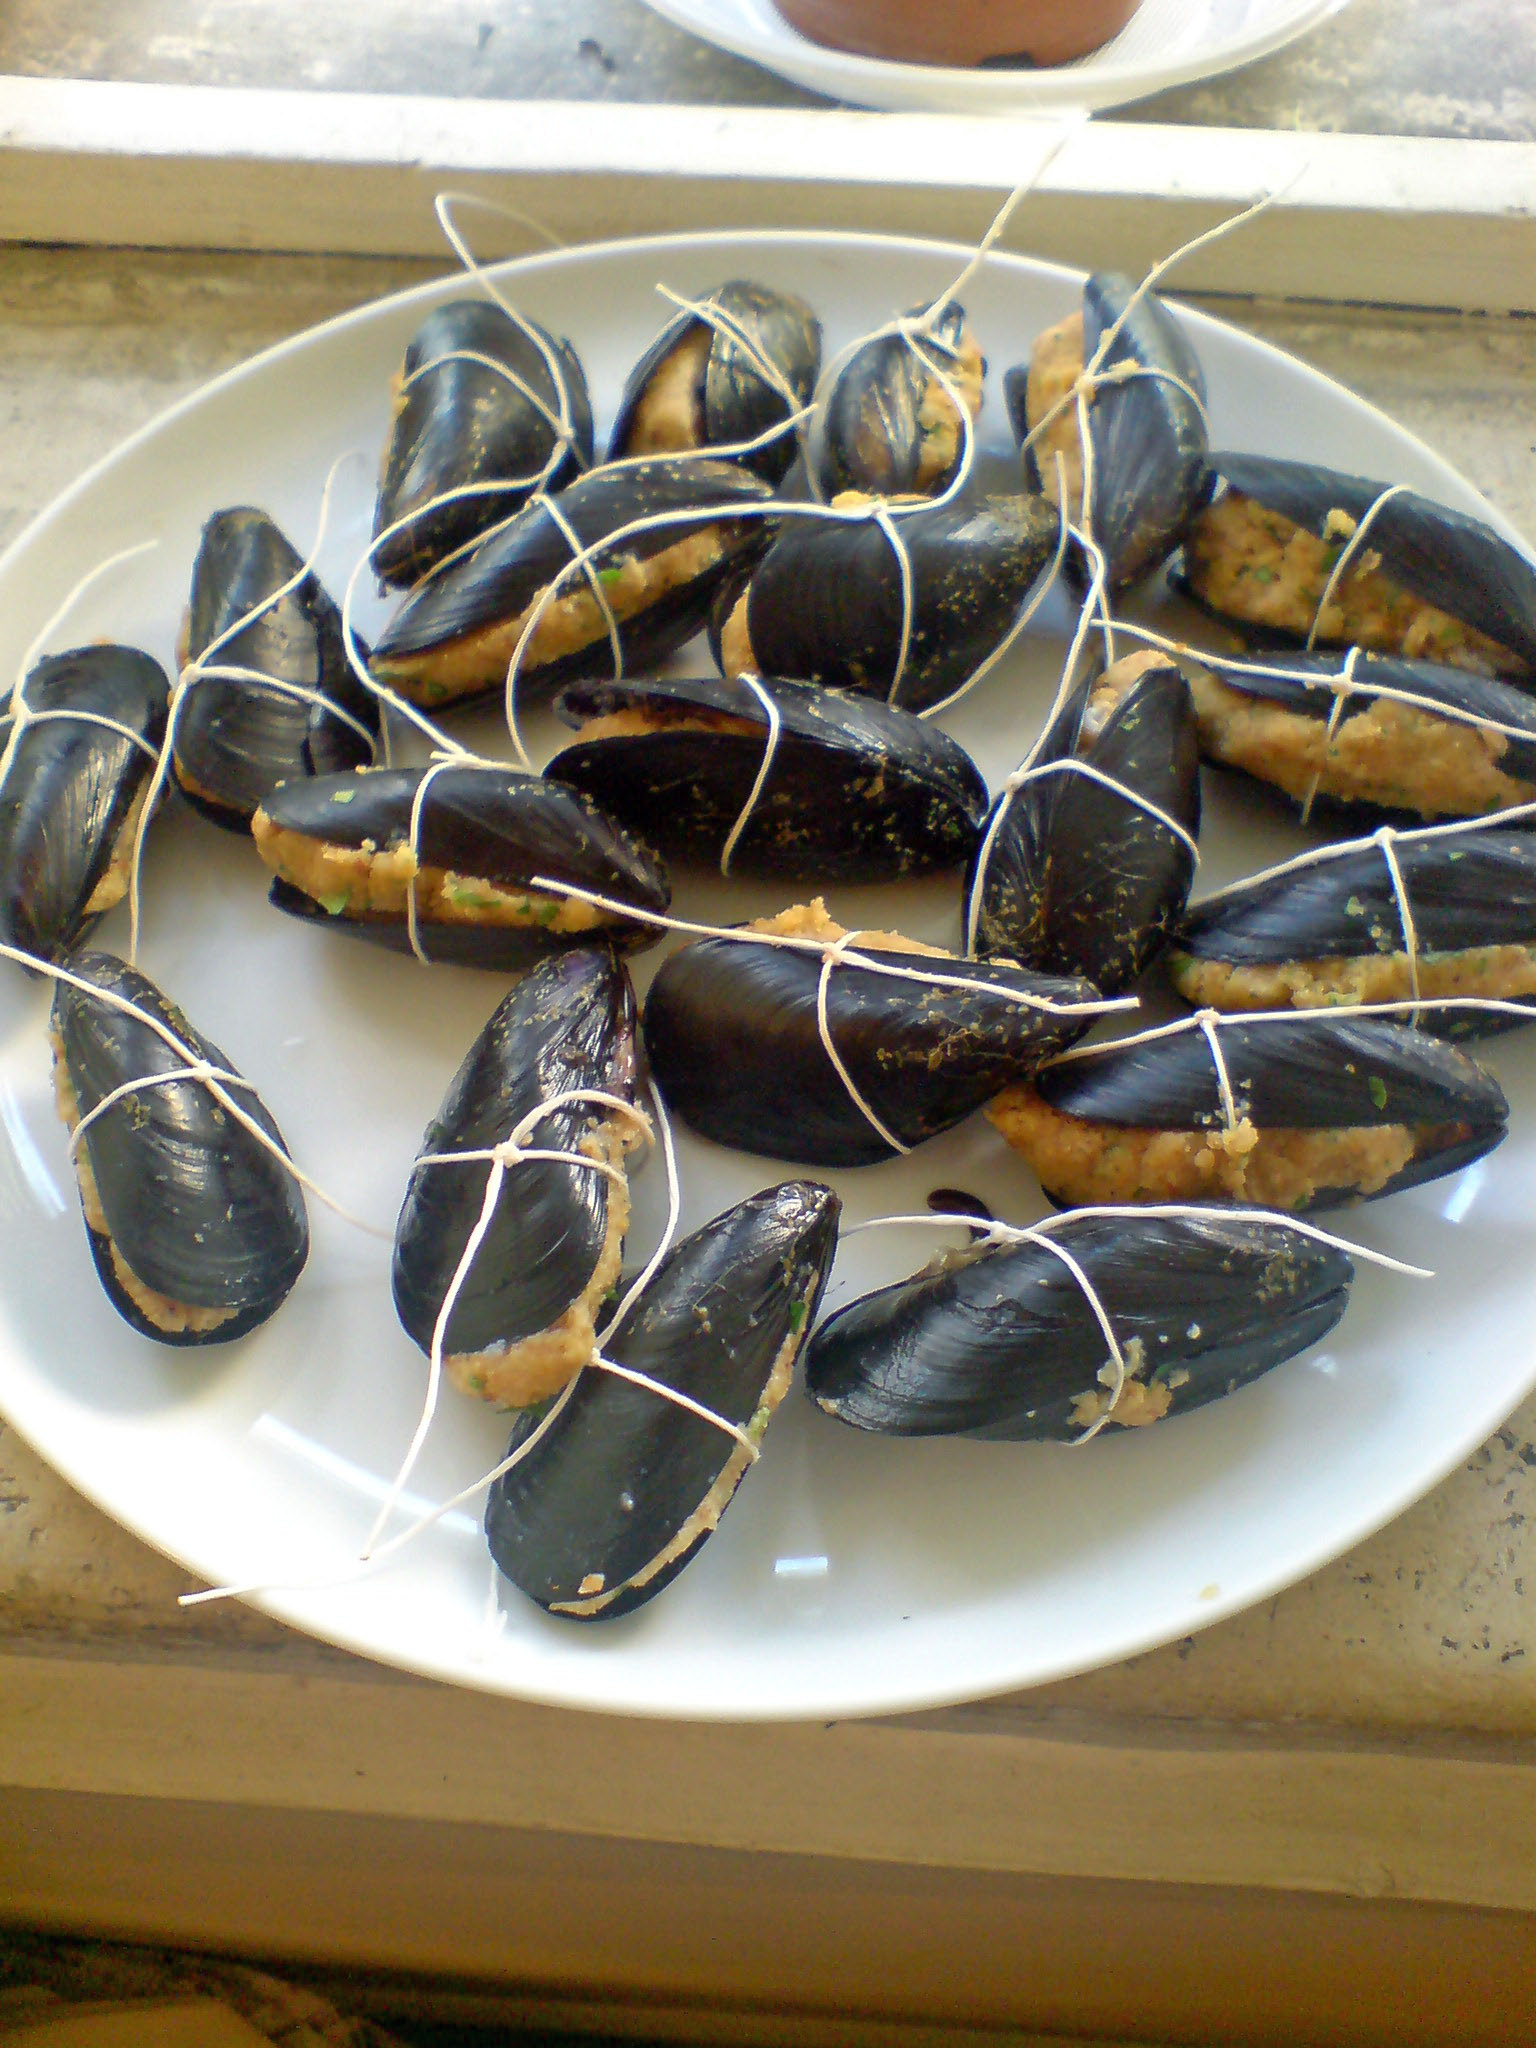 Stuffed mussels ready to cook